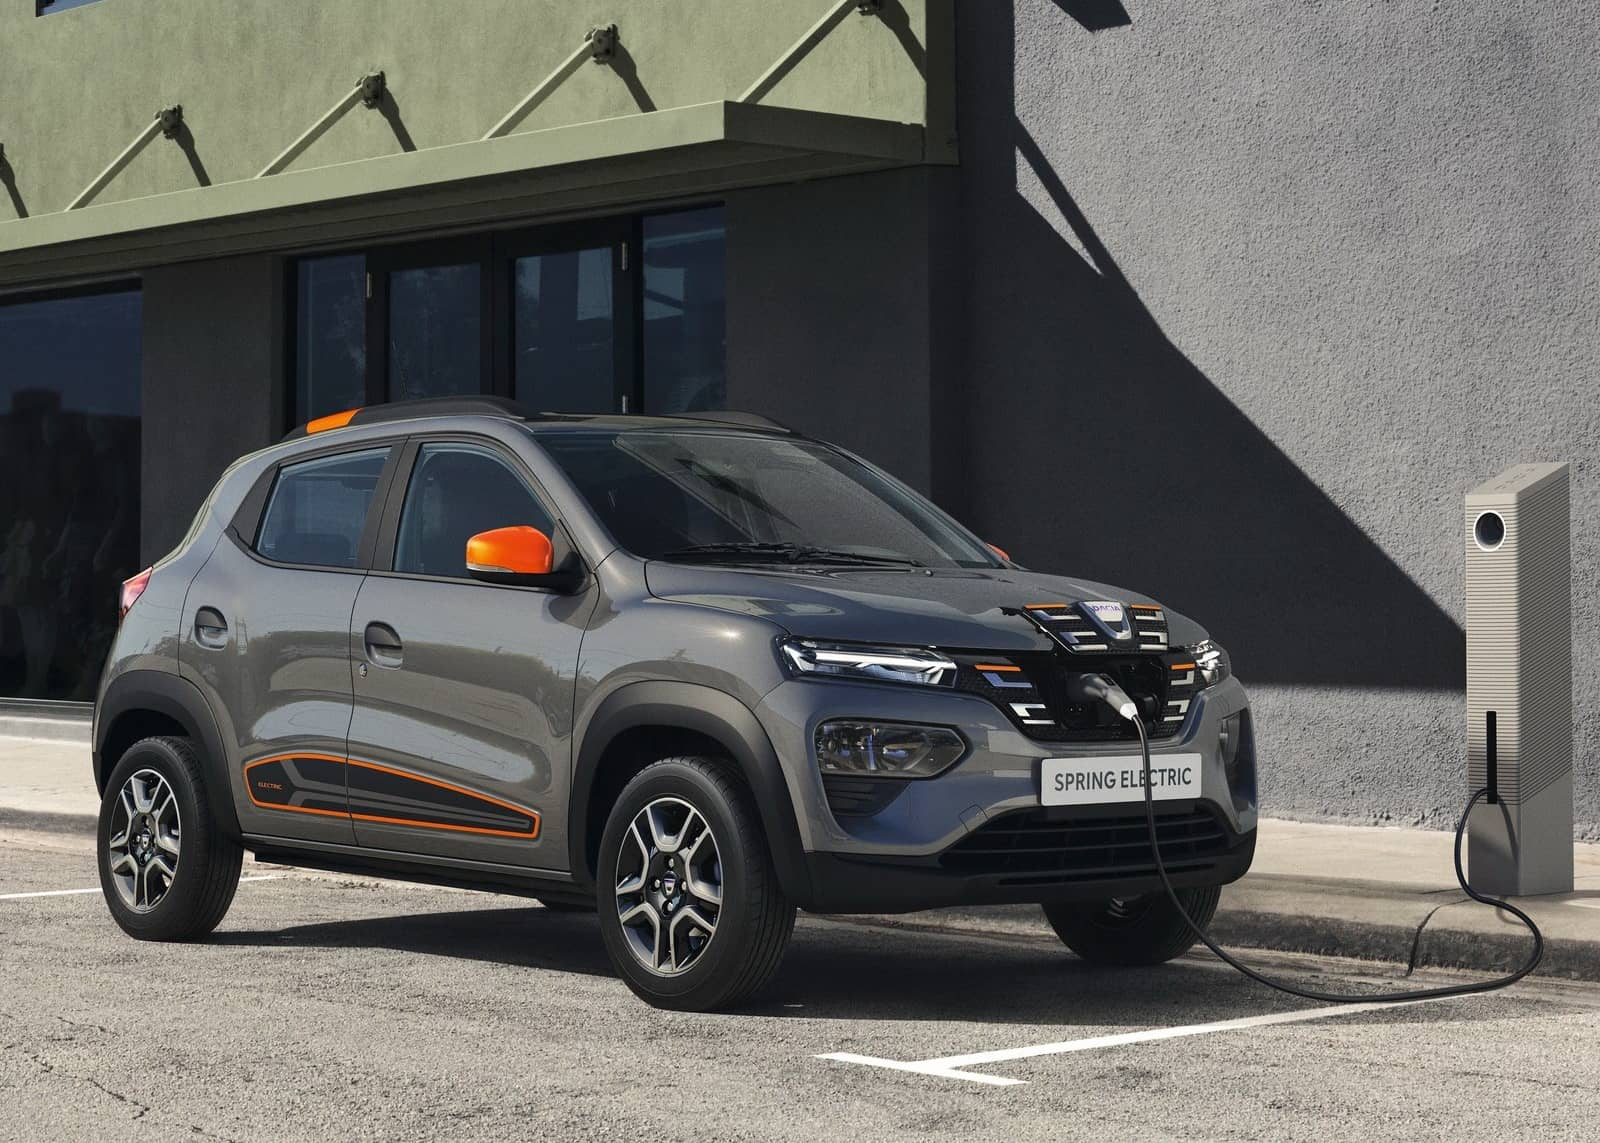 Dacia-Spring_Electric-2022-1600-03